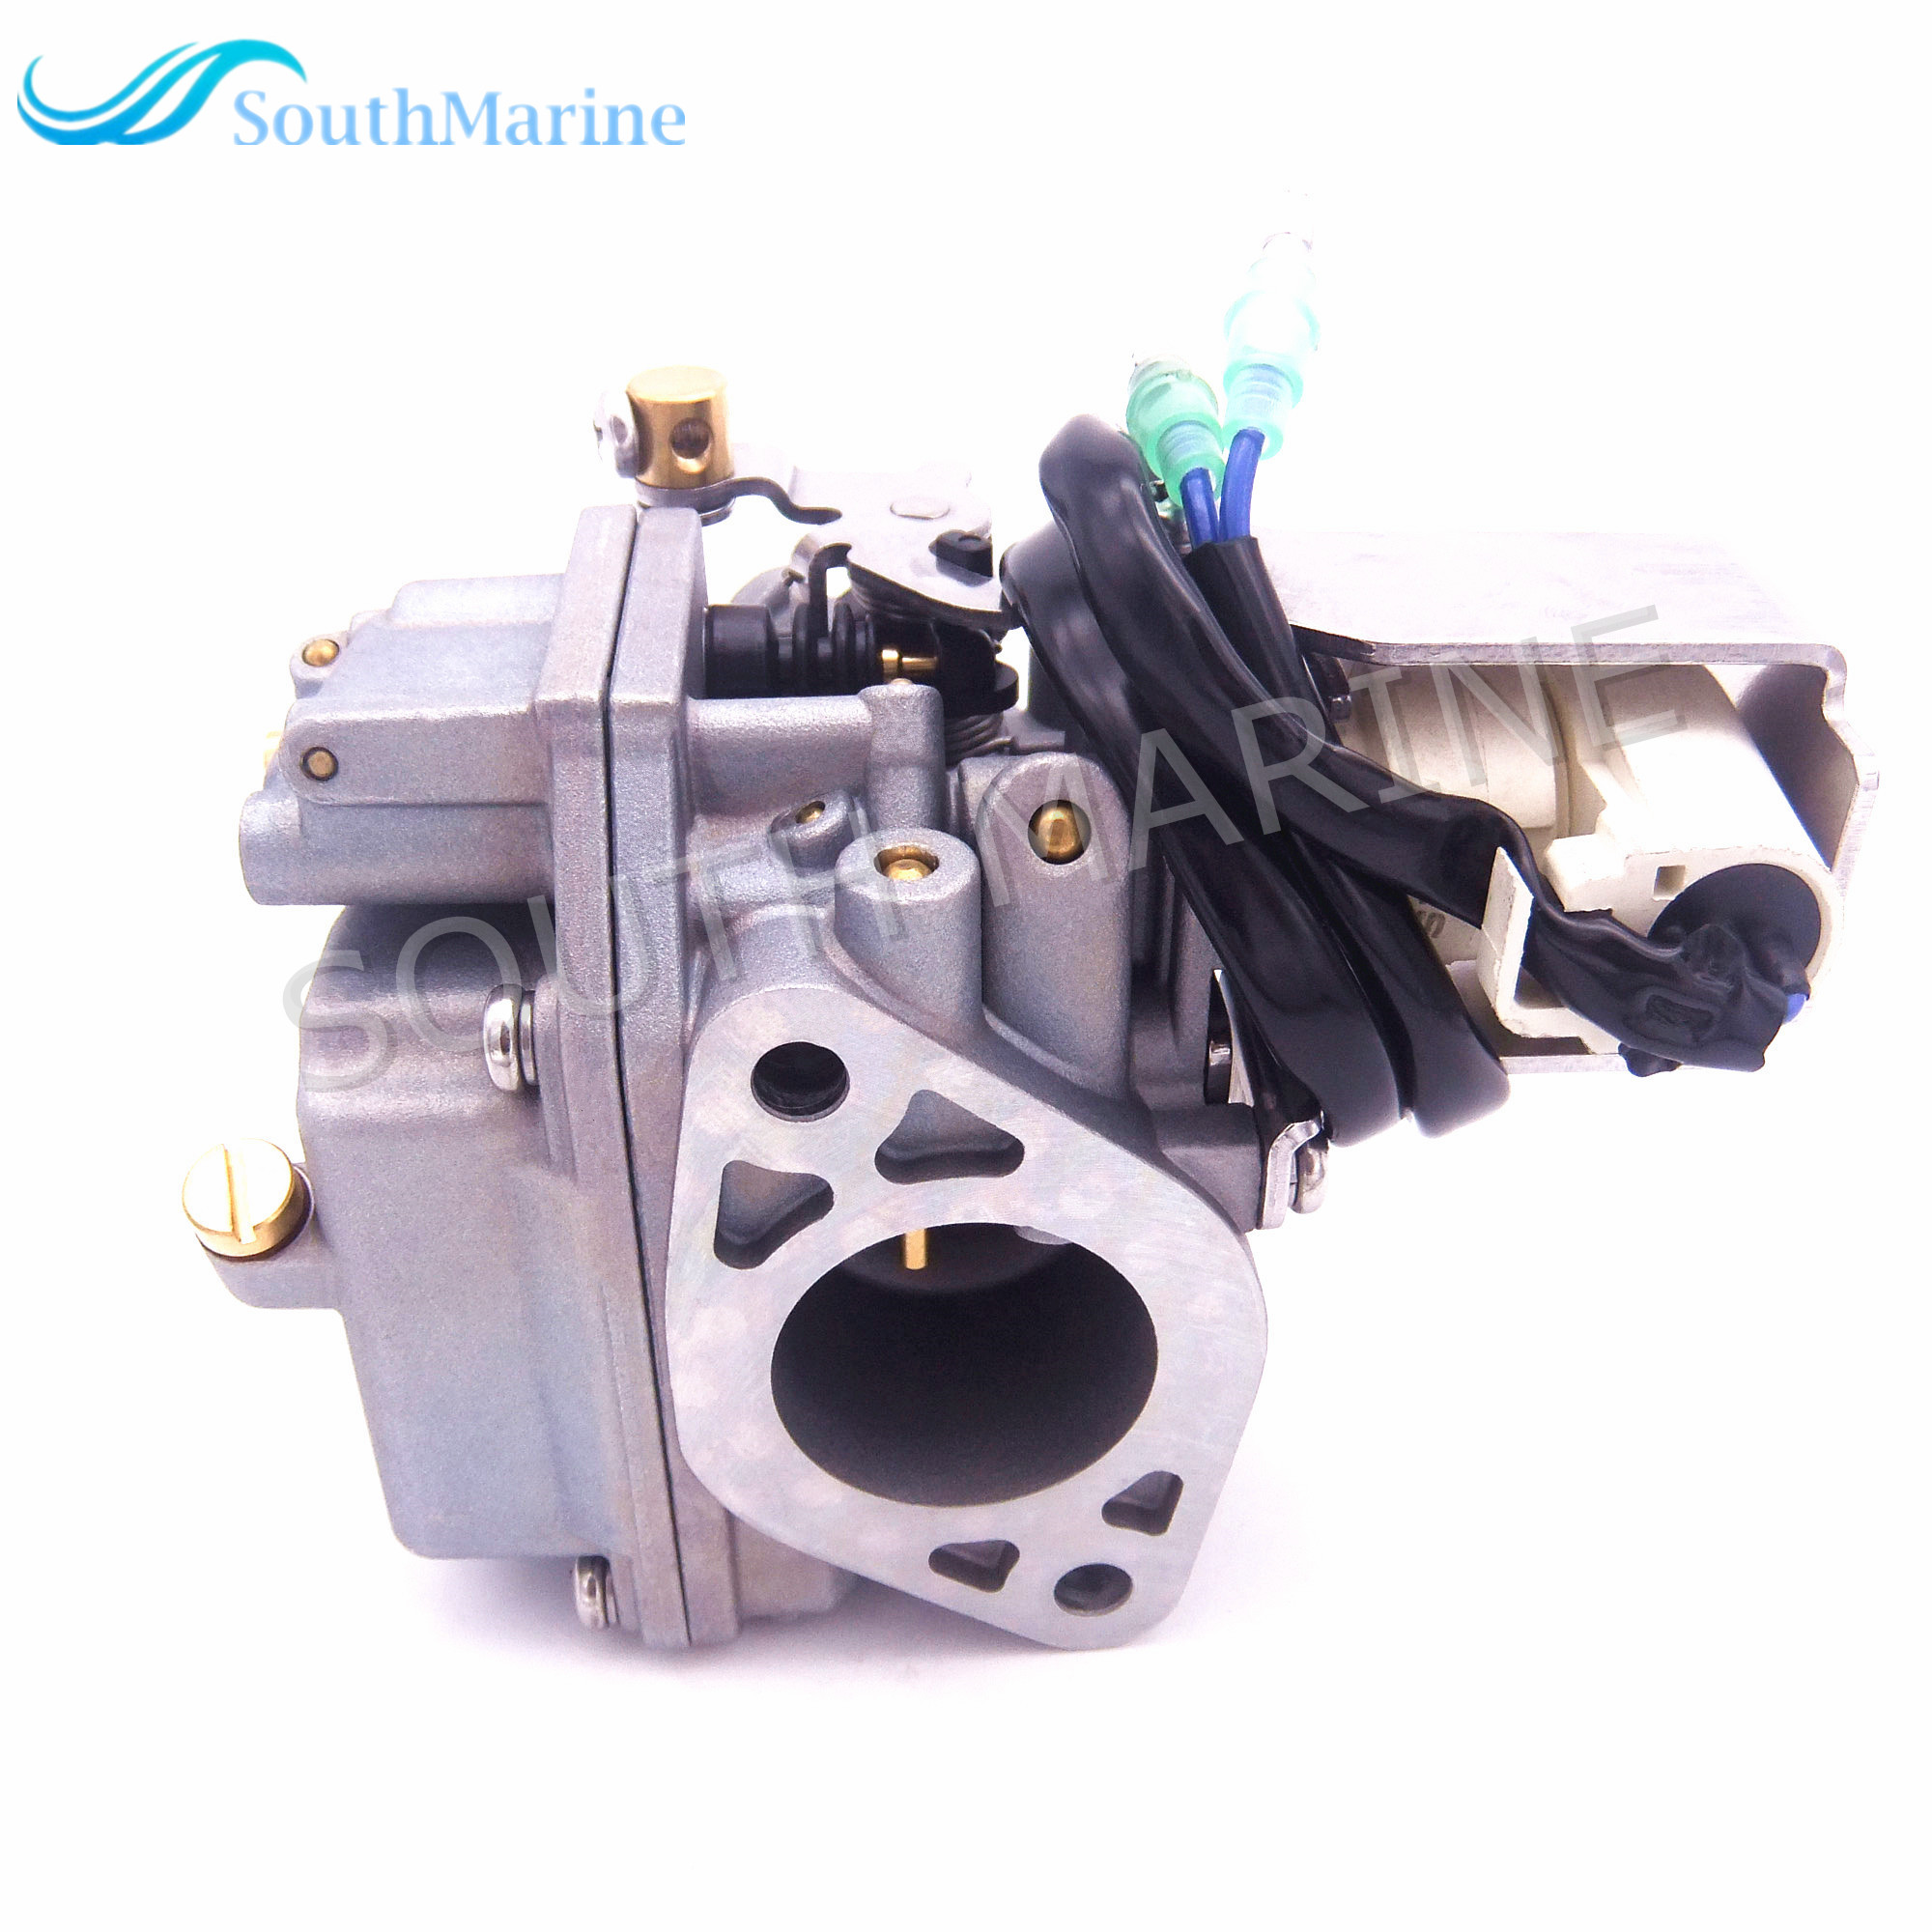 Outboard Engine Carburetor Assy 6AH-14301-00 6AH-14301-01 for Yamaha 4-stroke F20 Boat Motor Free Shipping fit yamaha outboard 61n 45510 00 00 drive shaft assy 61n 45510